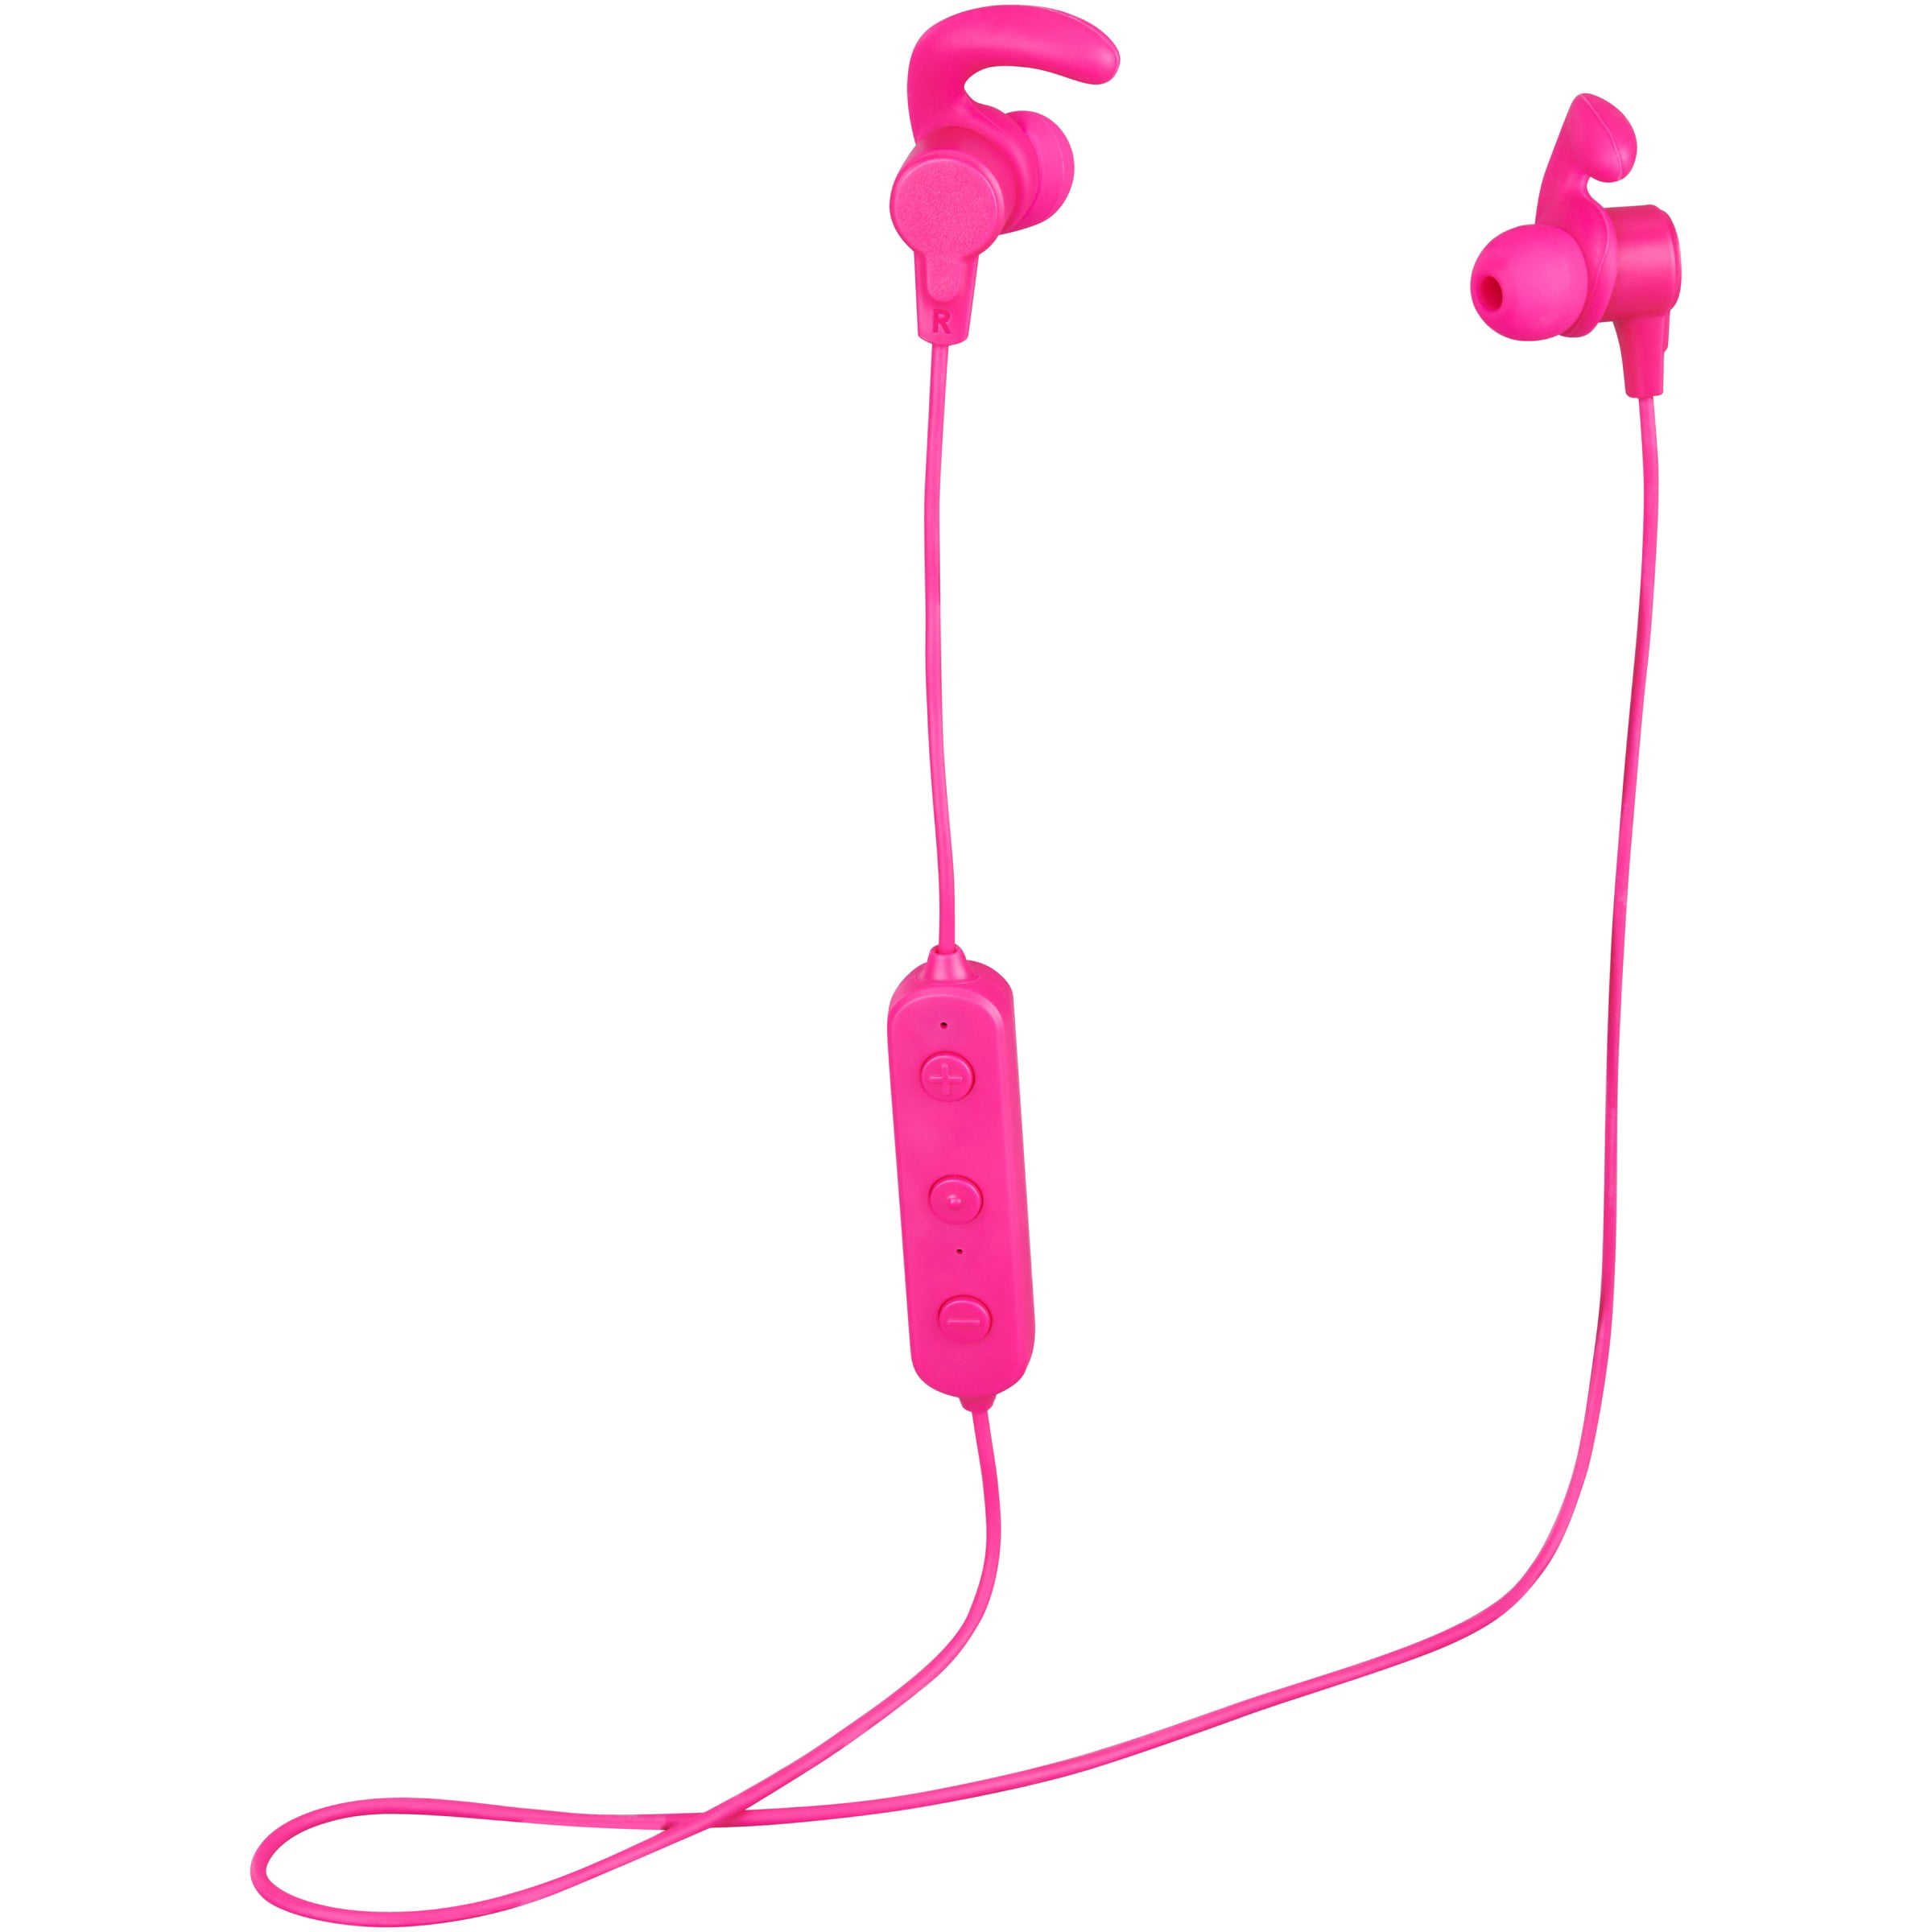 55233e2108ff0d ONN Bluetooth In-Ear Headphones with Micro-USB Charging Cable, Pink ...